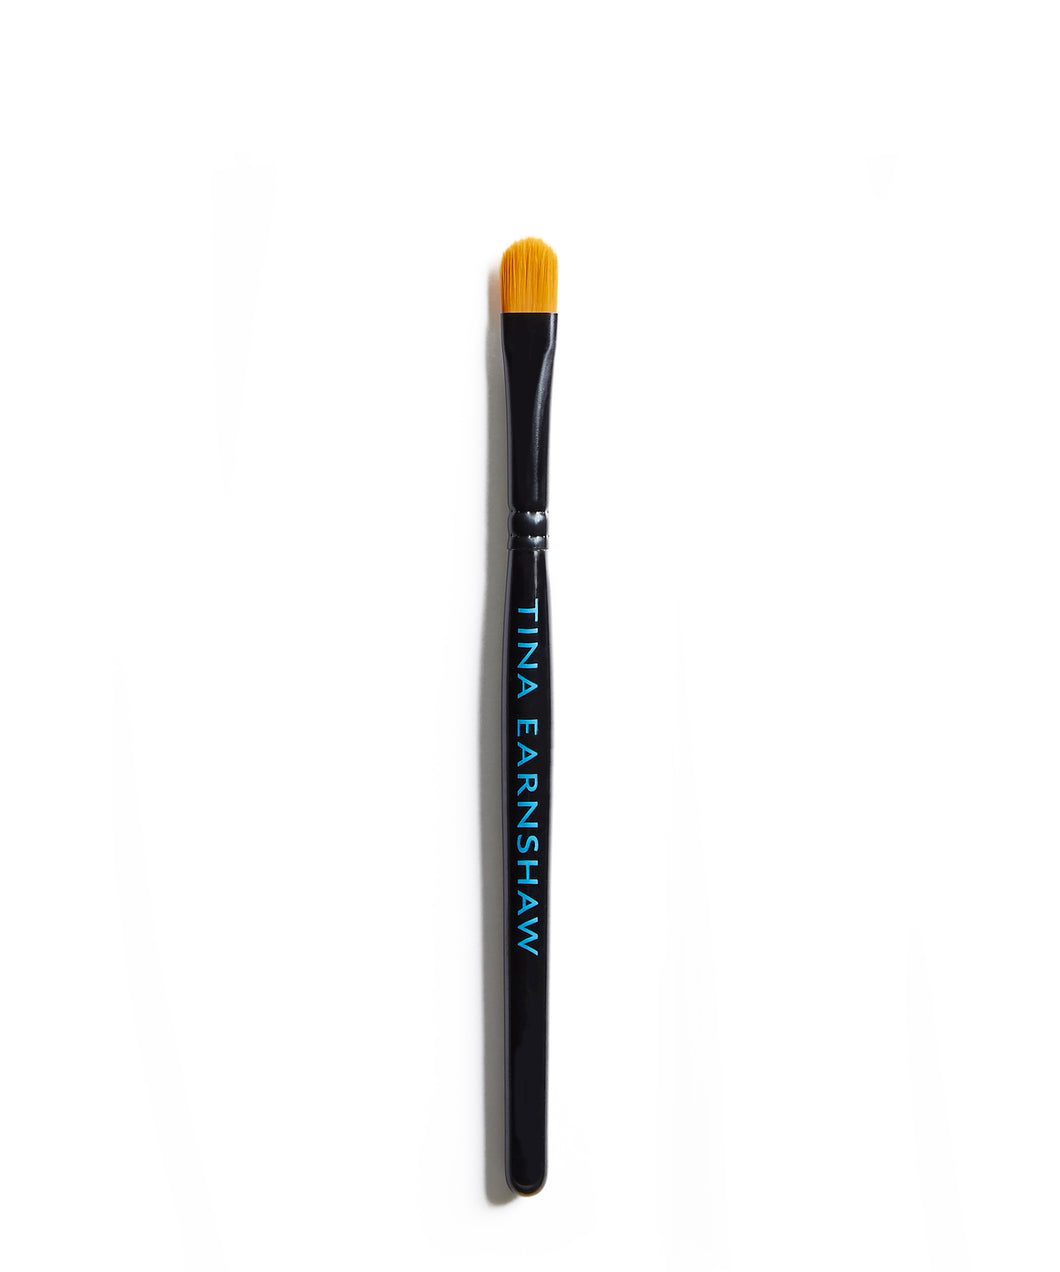 Concealer Brush - No13